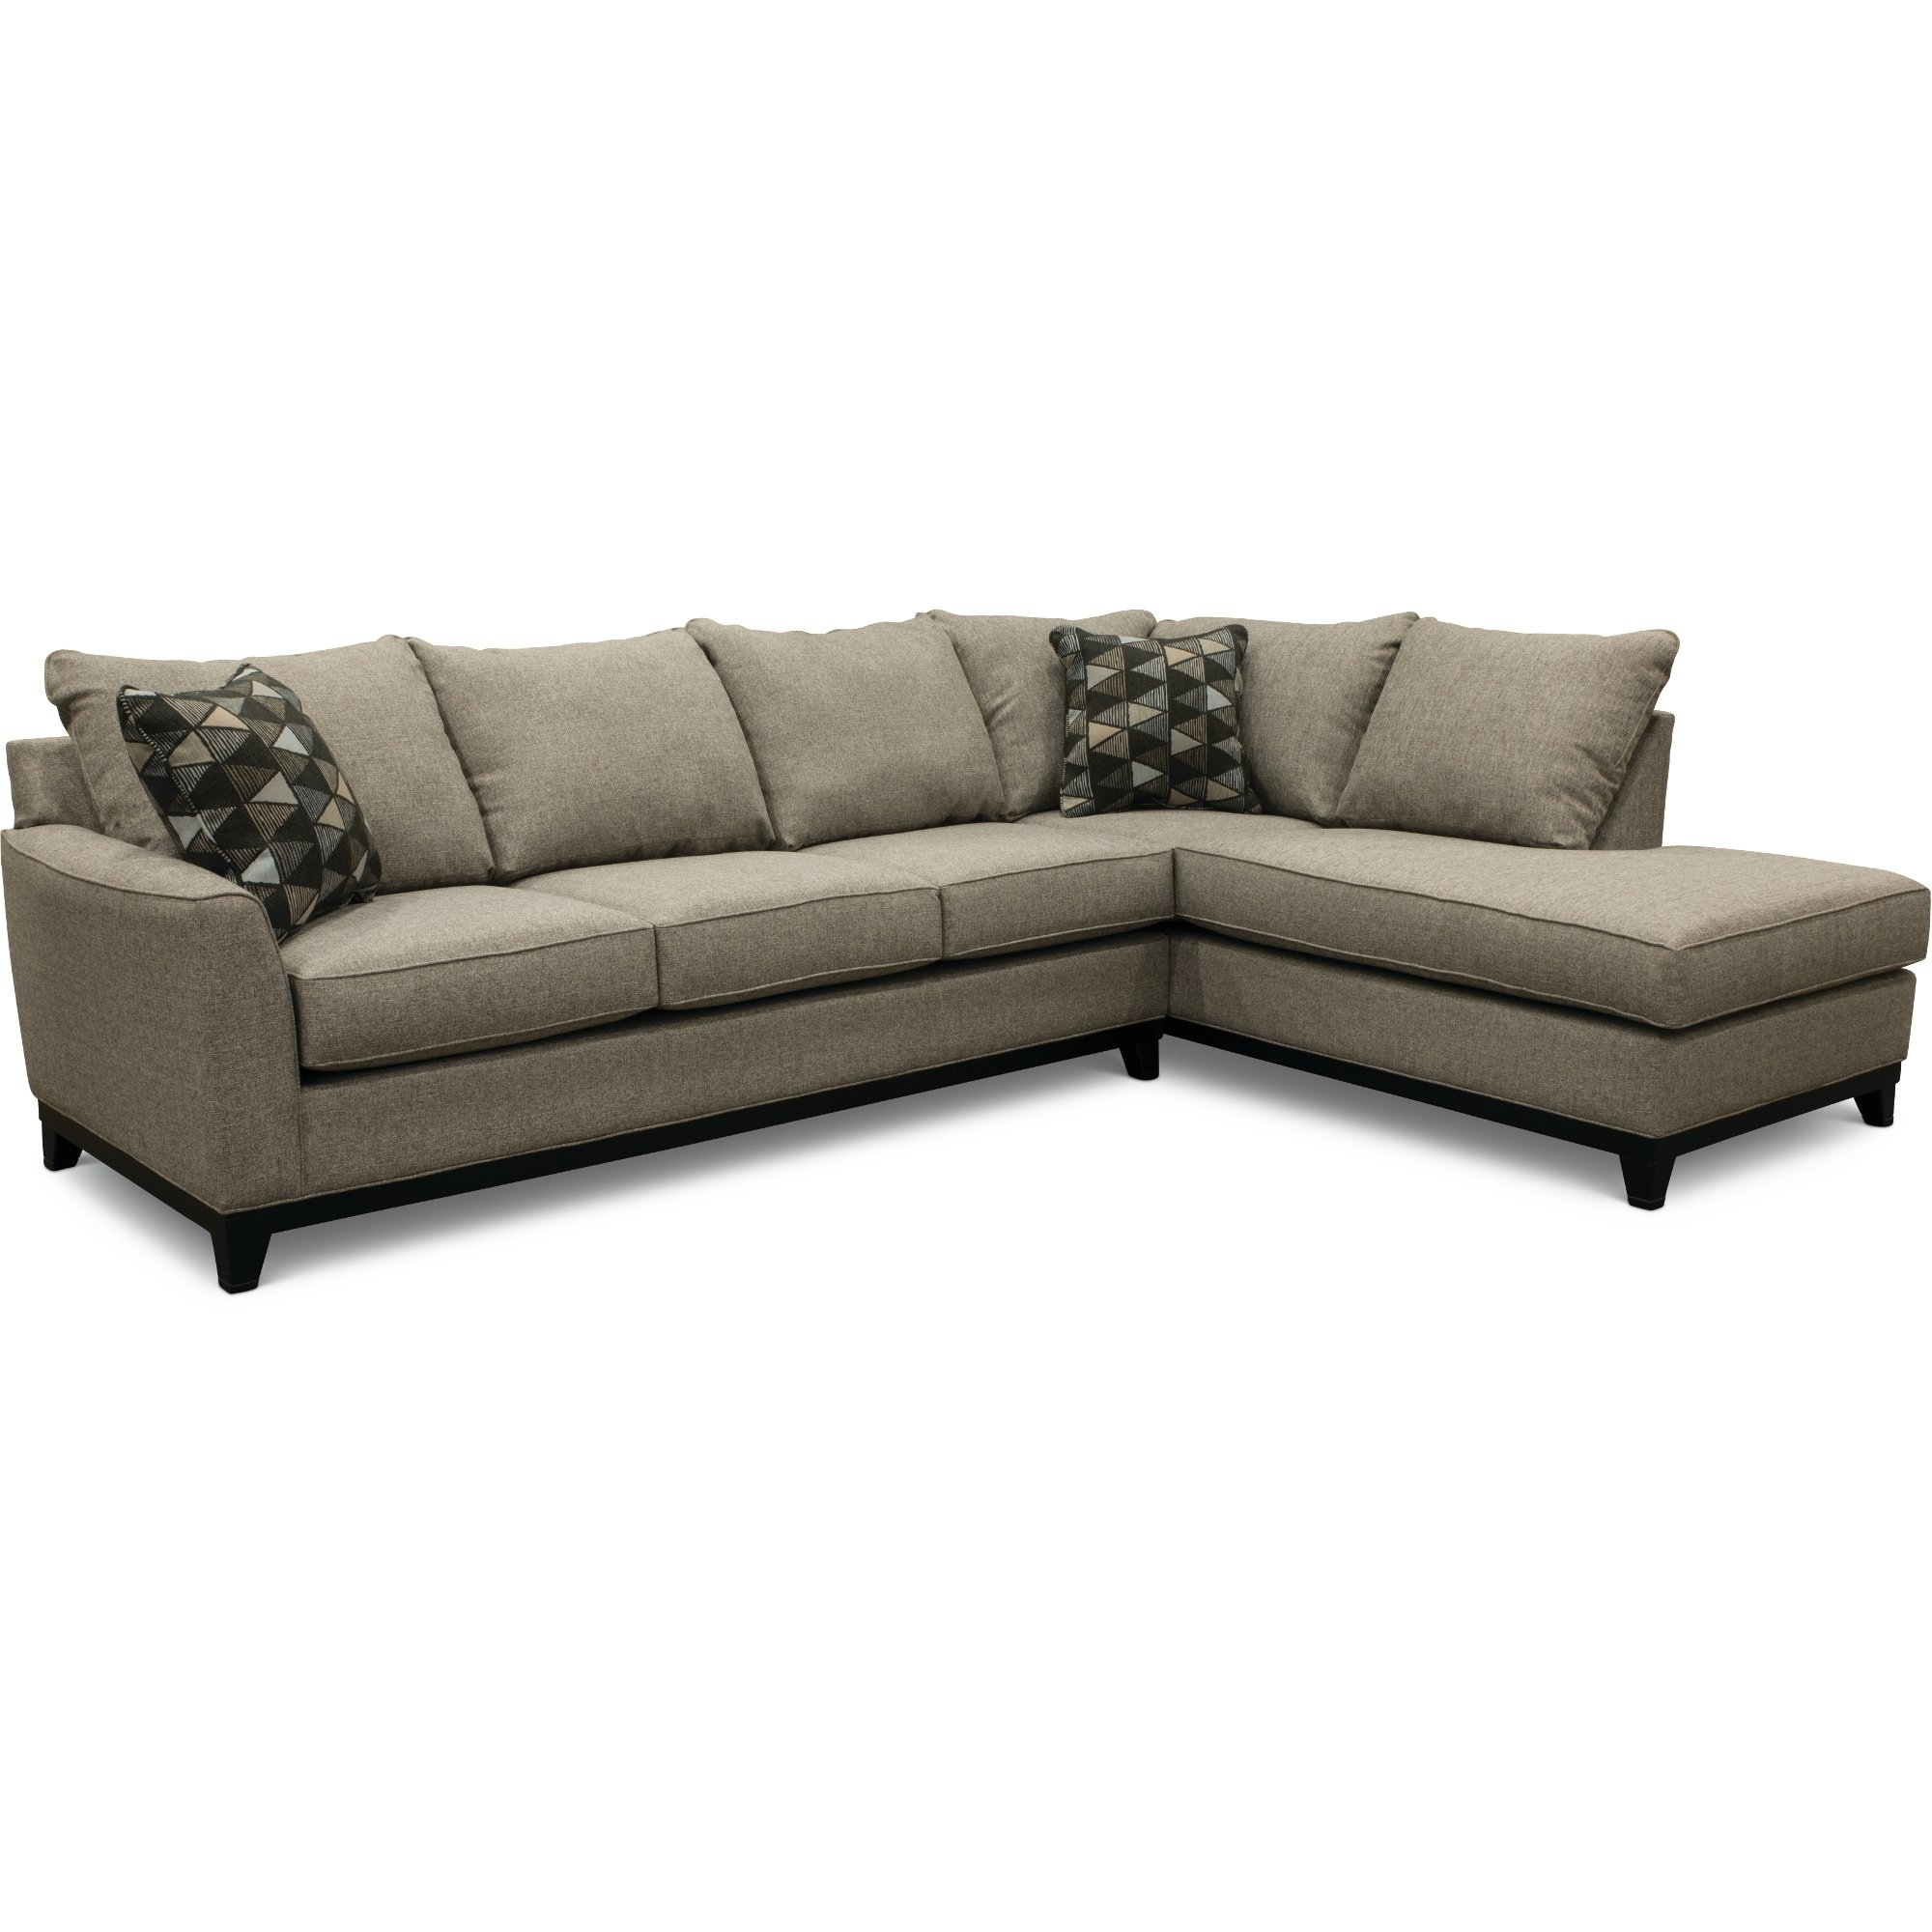 Casual Contemporary Slate Gray 2 Piece Sectional Sofa – Emerson | Rc With Regard To Cosmos Grey 2 Piece Sectionals With Laf Chaise (Image 5 of 25)